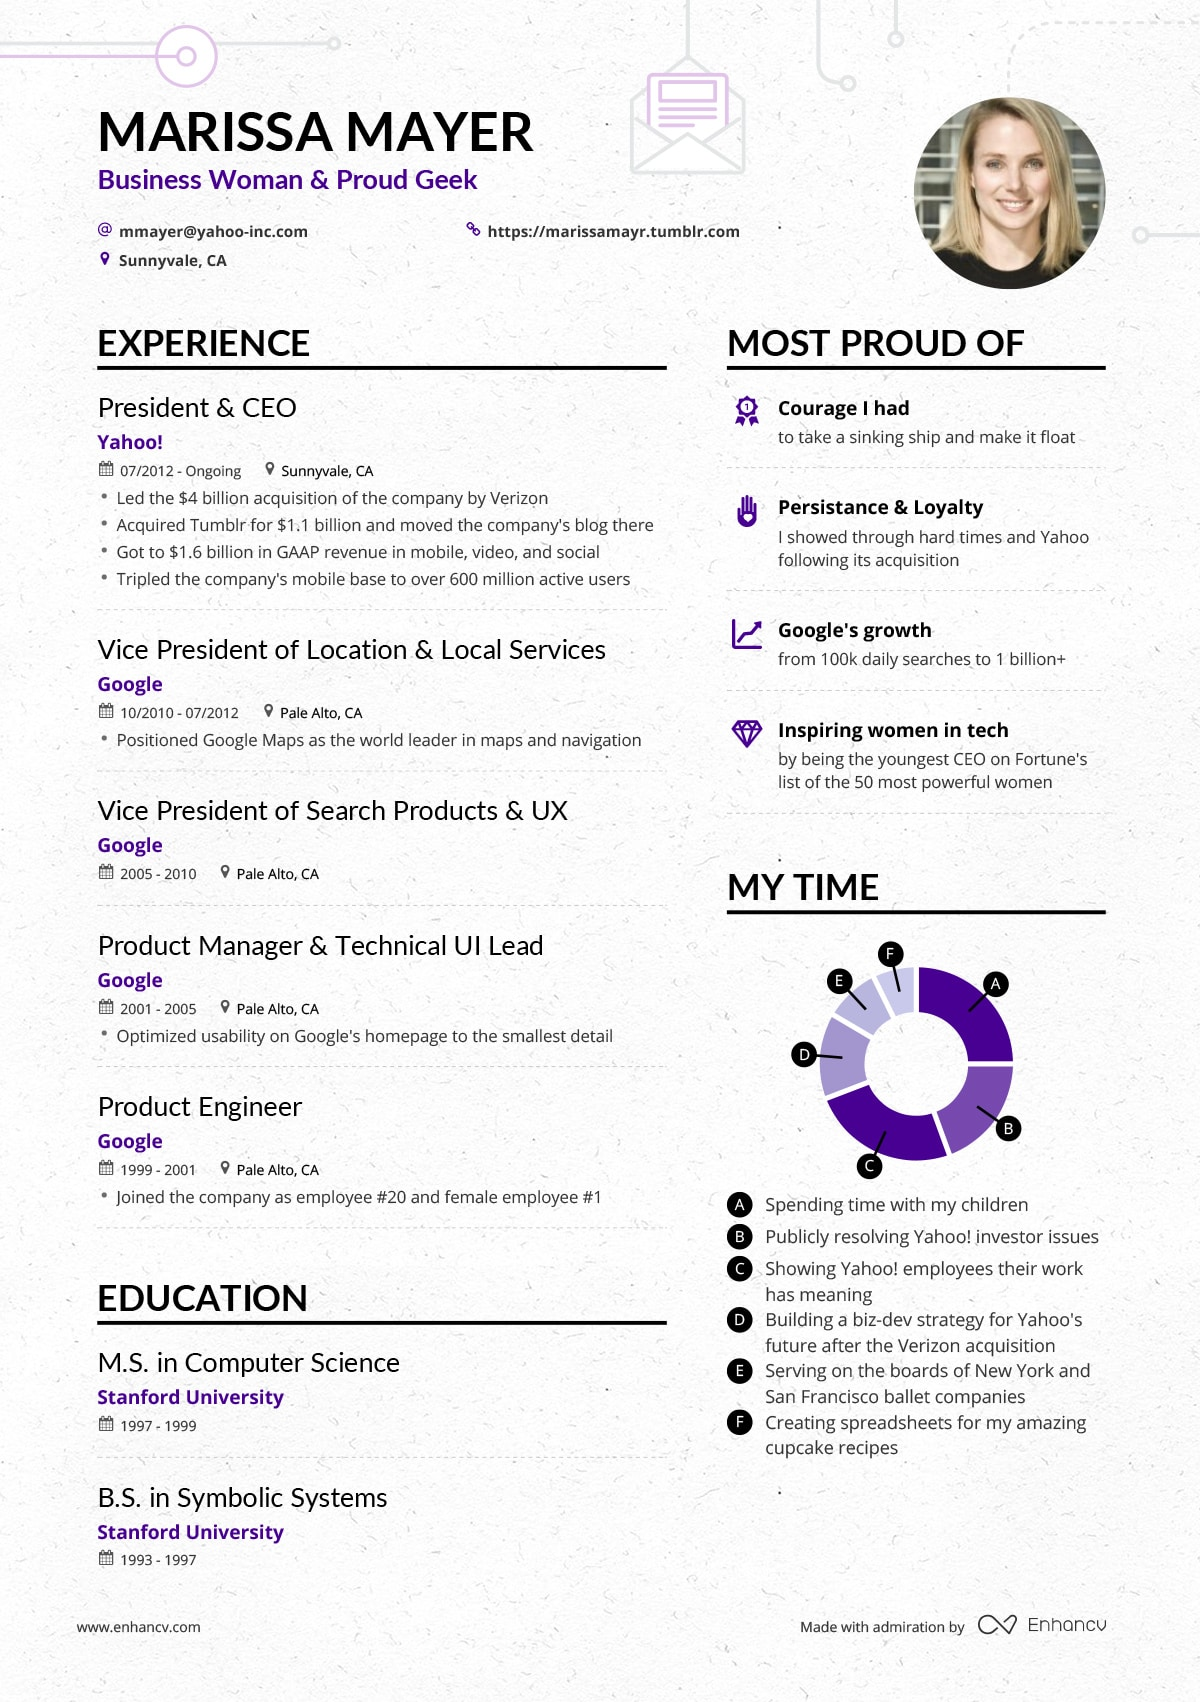 ceo resume marissa mayer - Marissa Mayer Resume